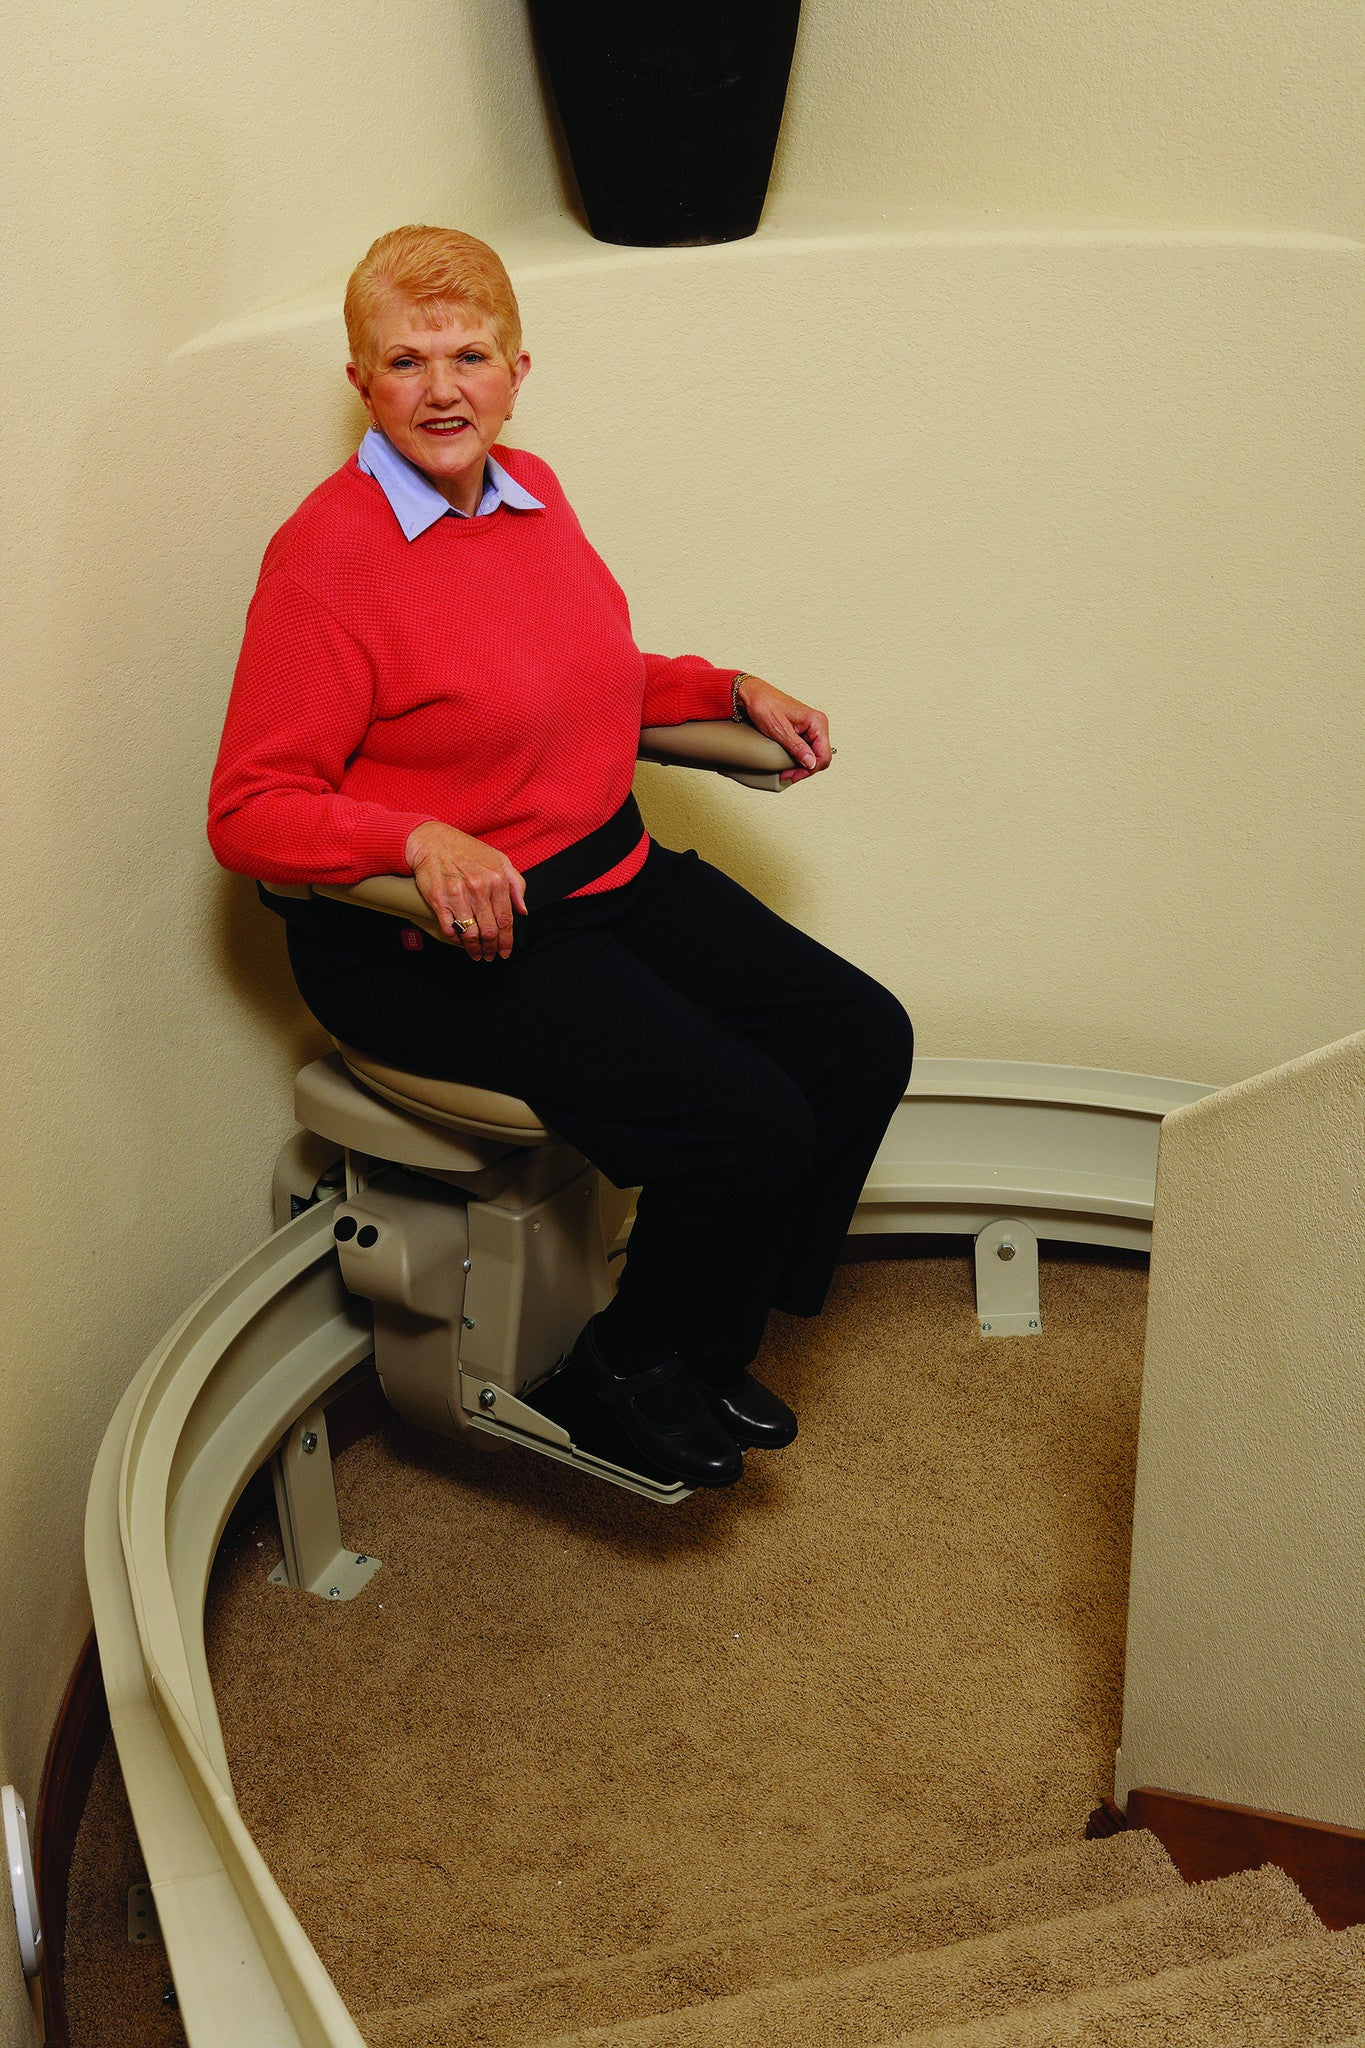 Bruno Elite Curve Stair Lift Safe Home Pro